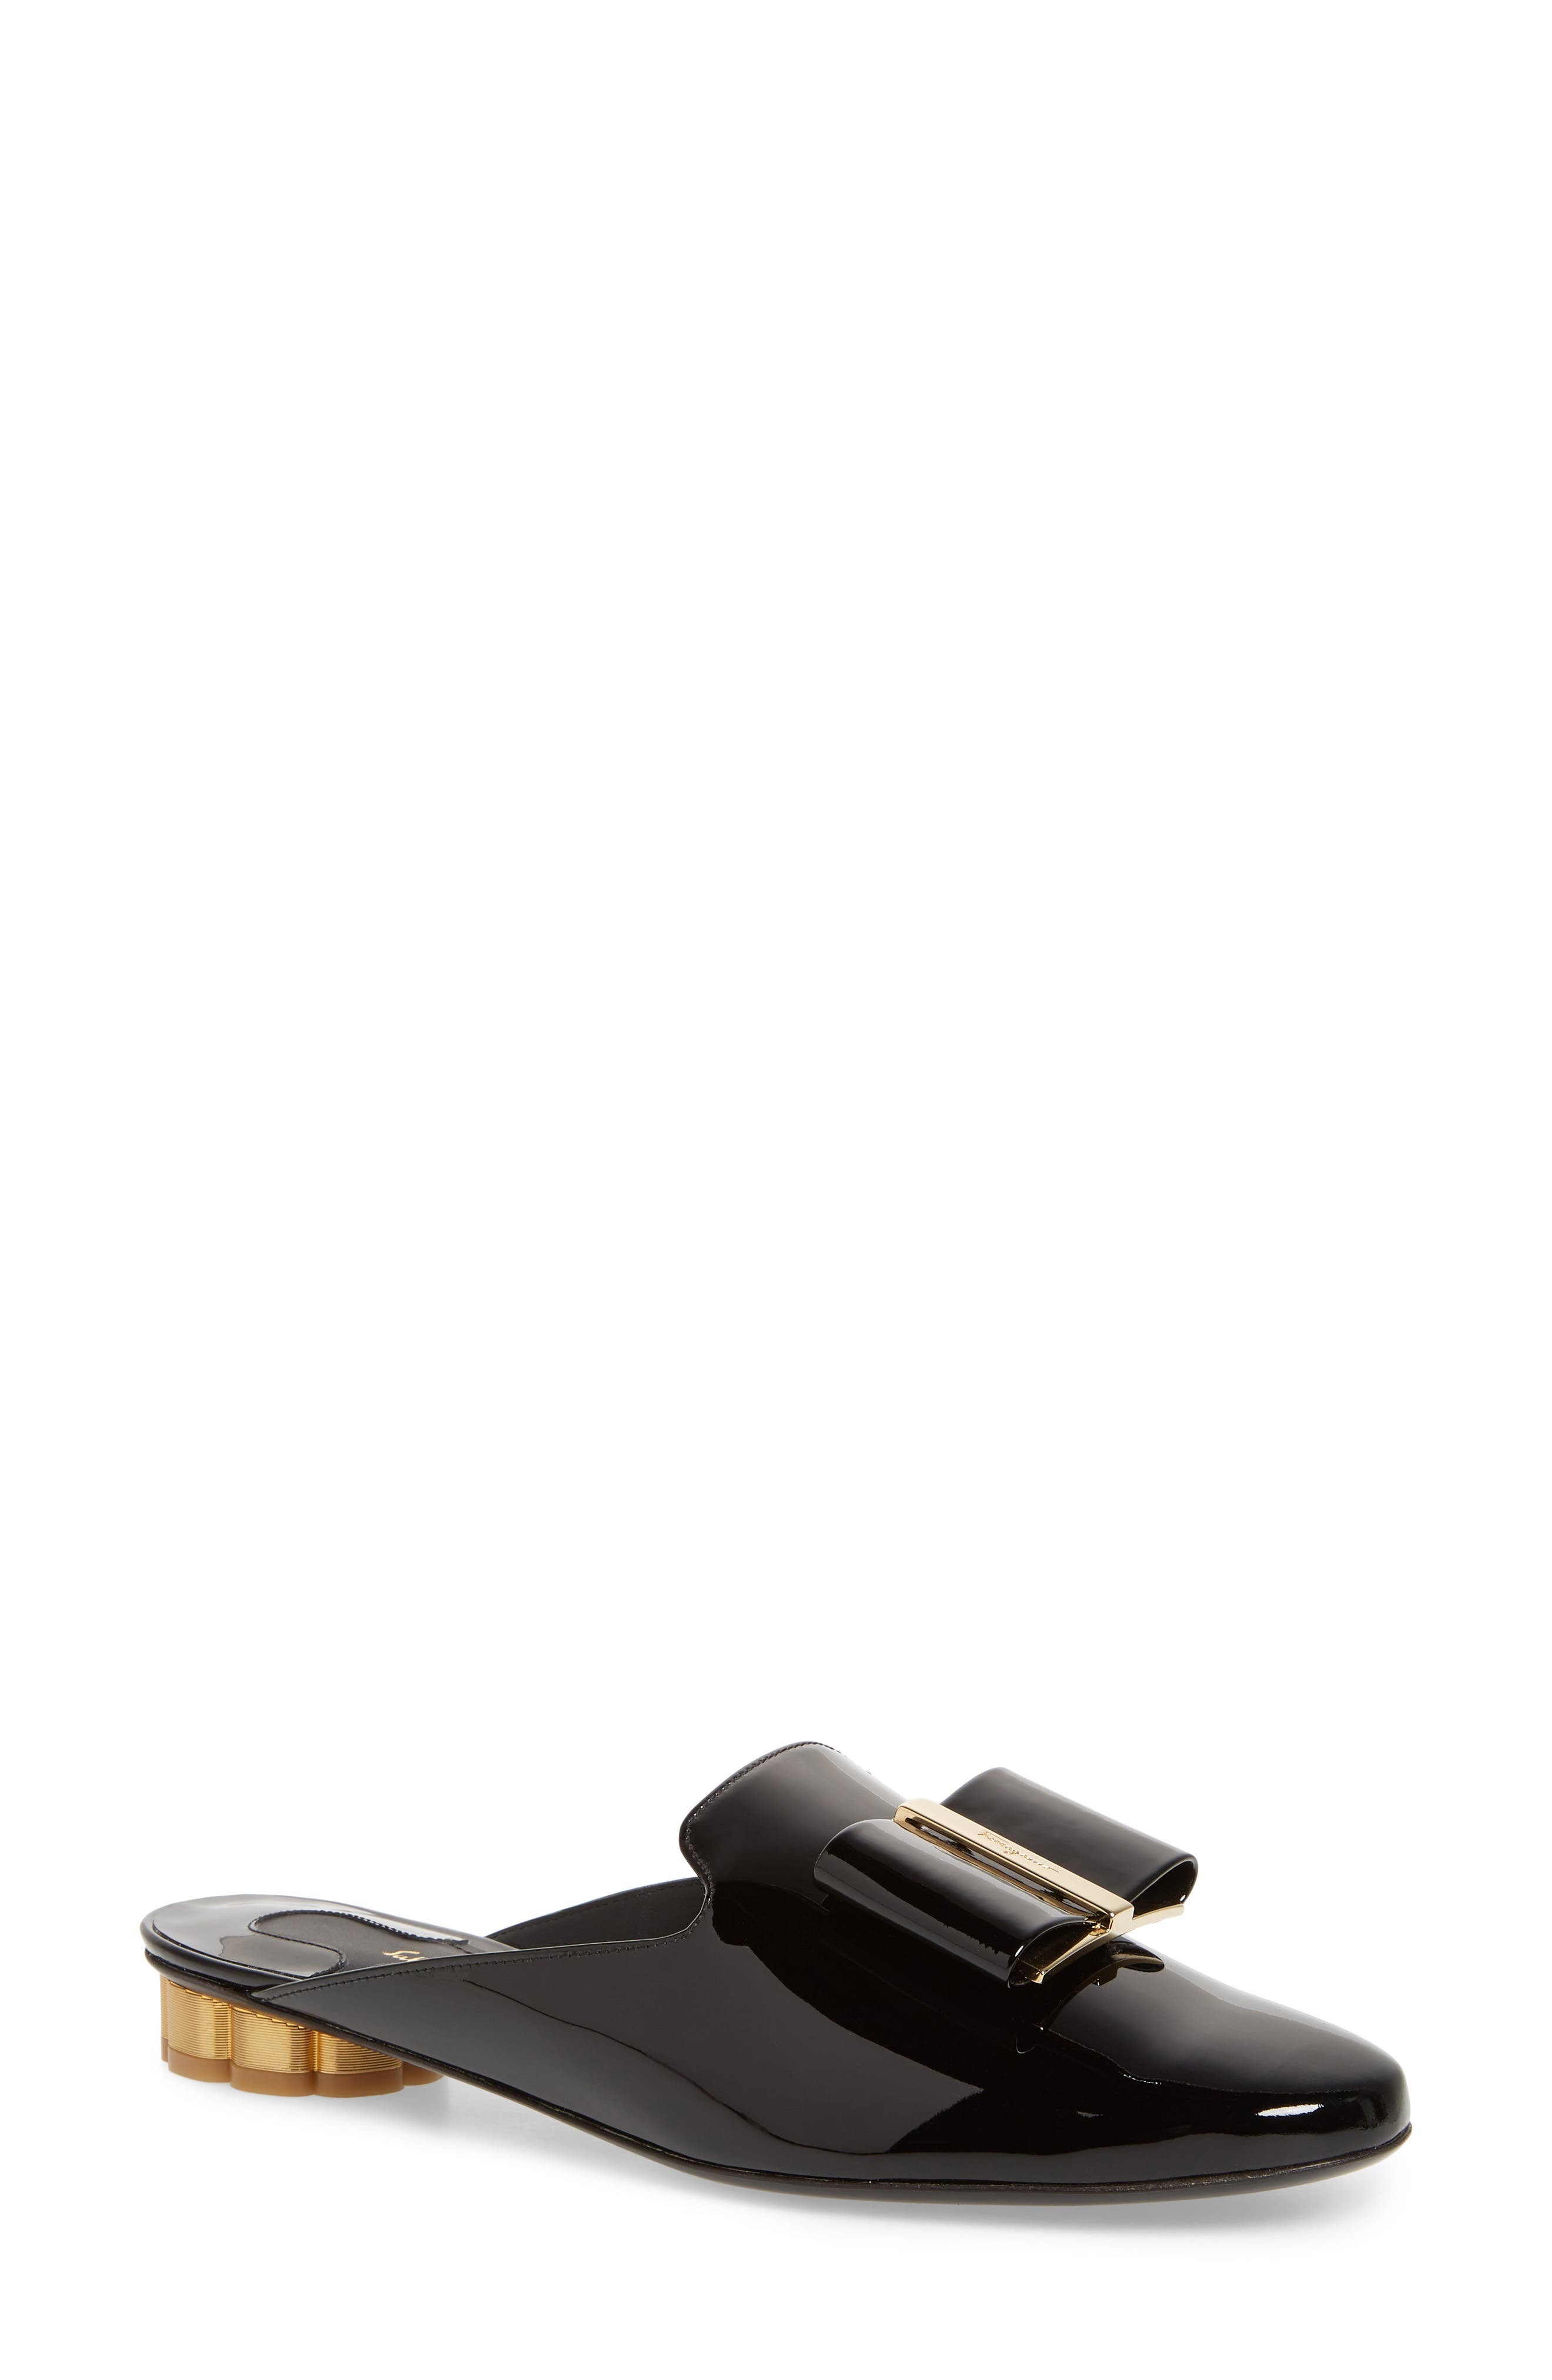 Sciacca Bow Loafer Mule,                             Main thumbnail 1, color,                             Black Patent